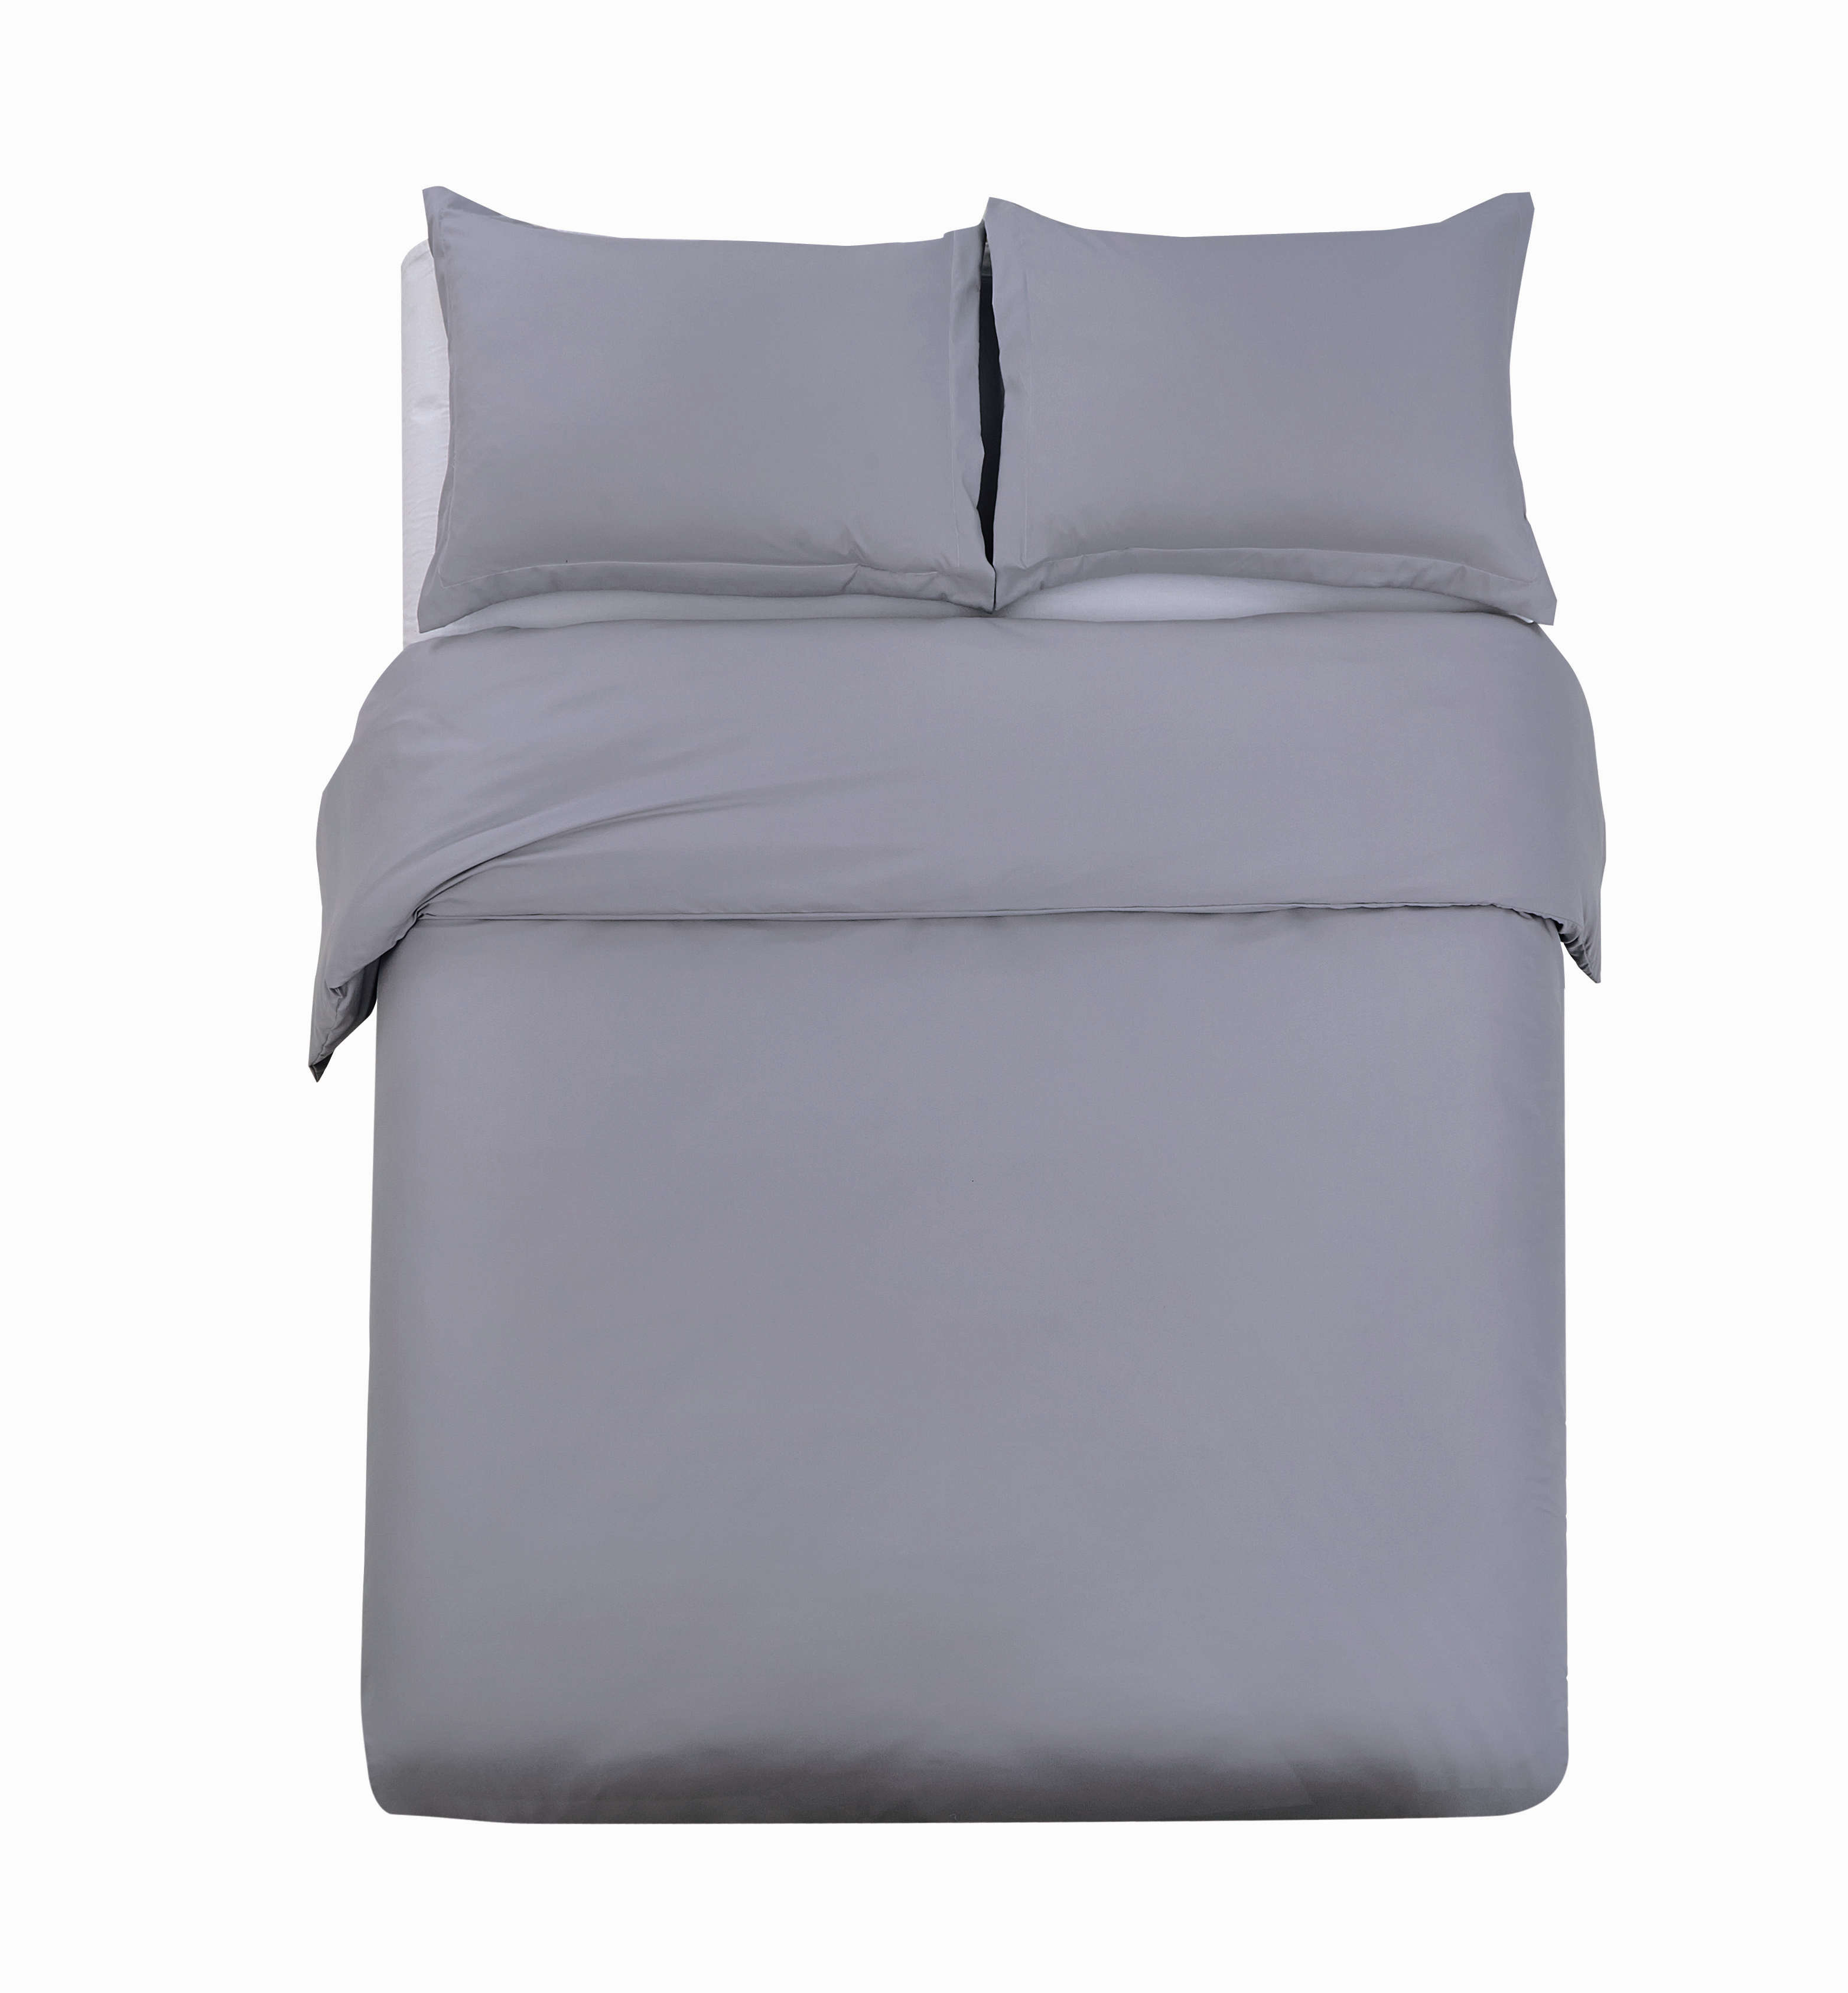 Duvet Cover Sets 3 PC Brushed Microfiber Solid Color, Dark Gray, Full/Queen